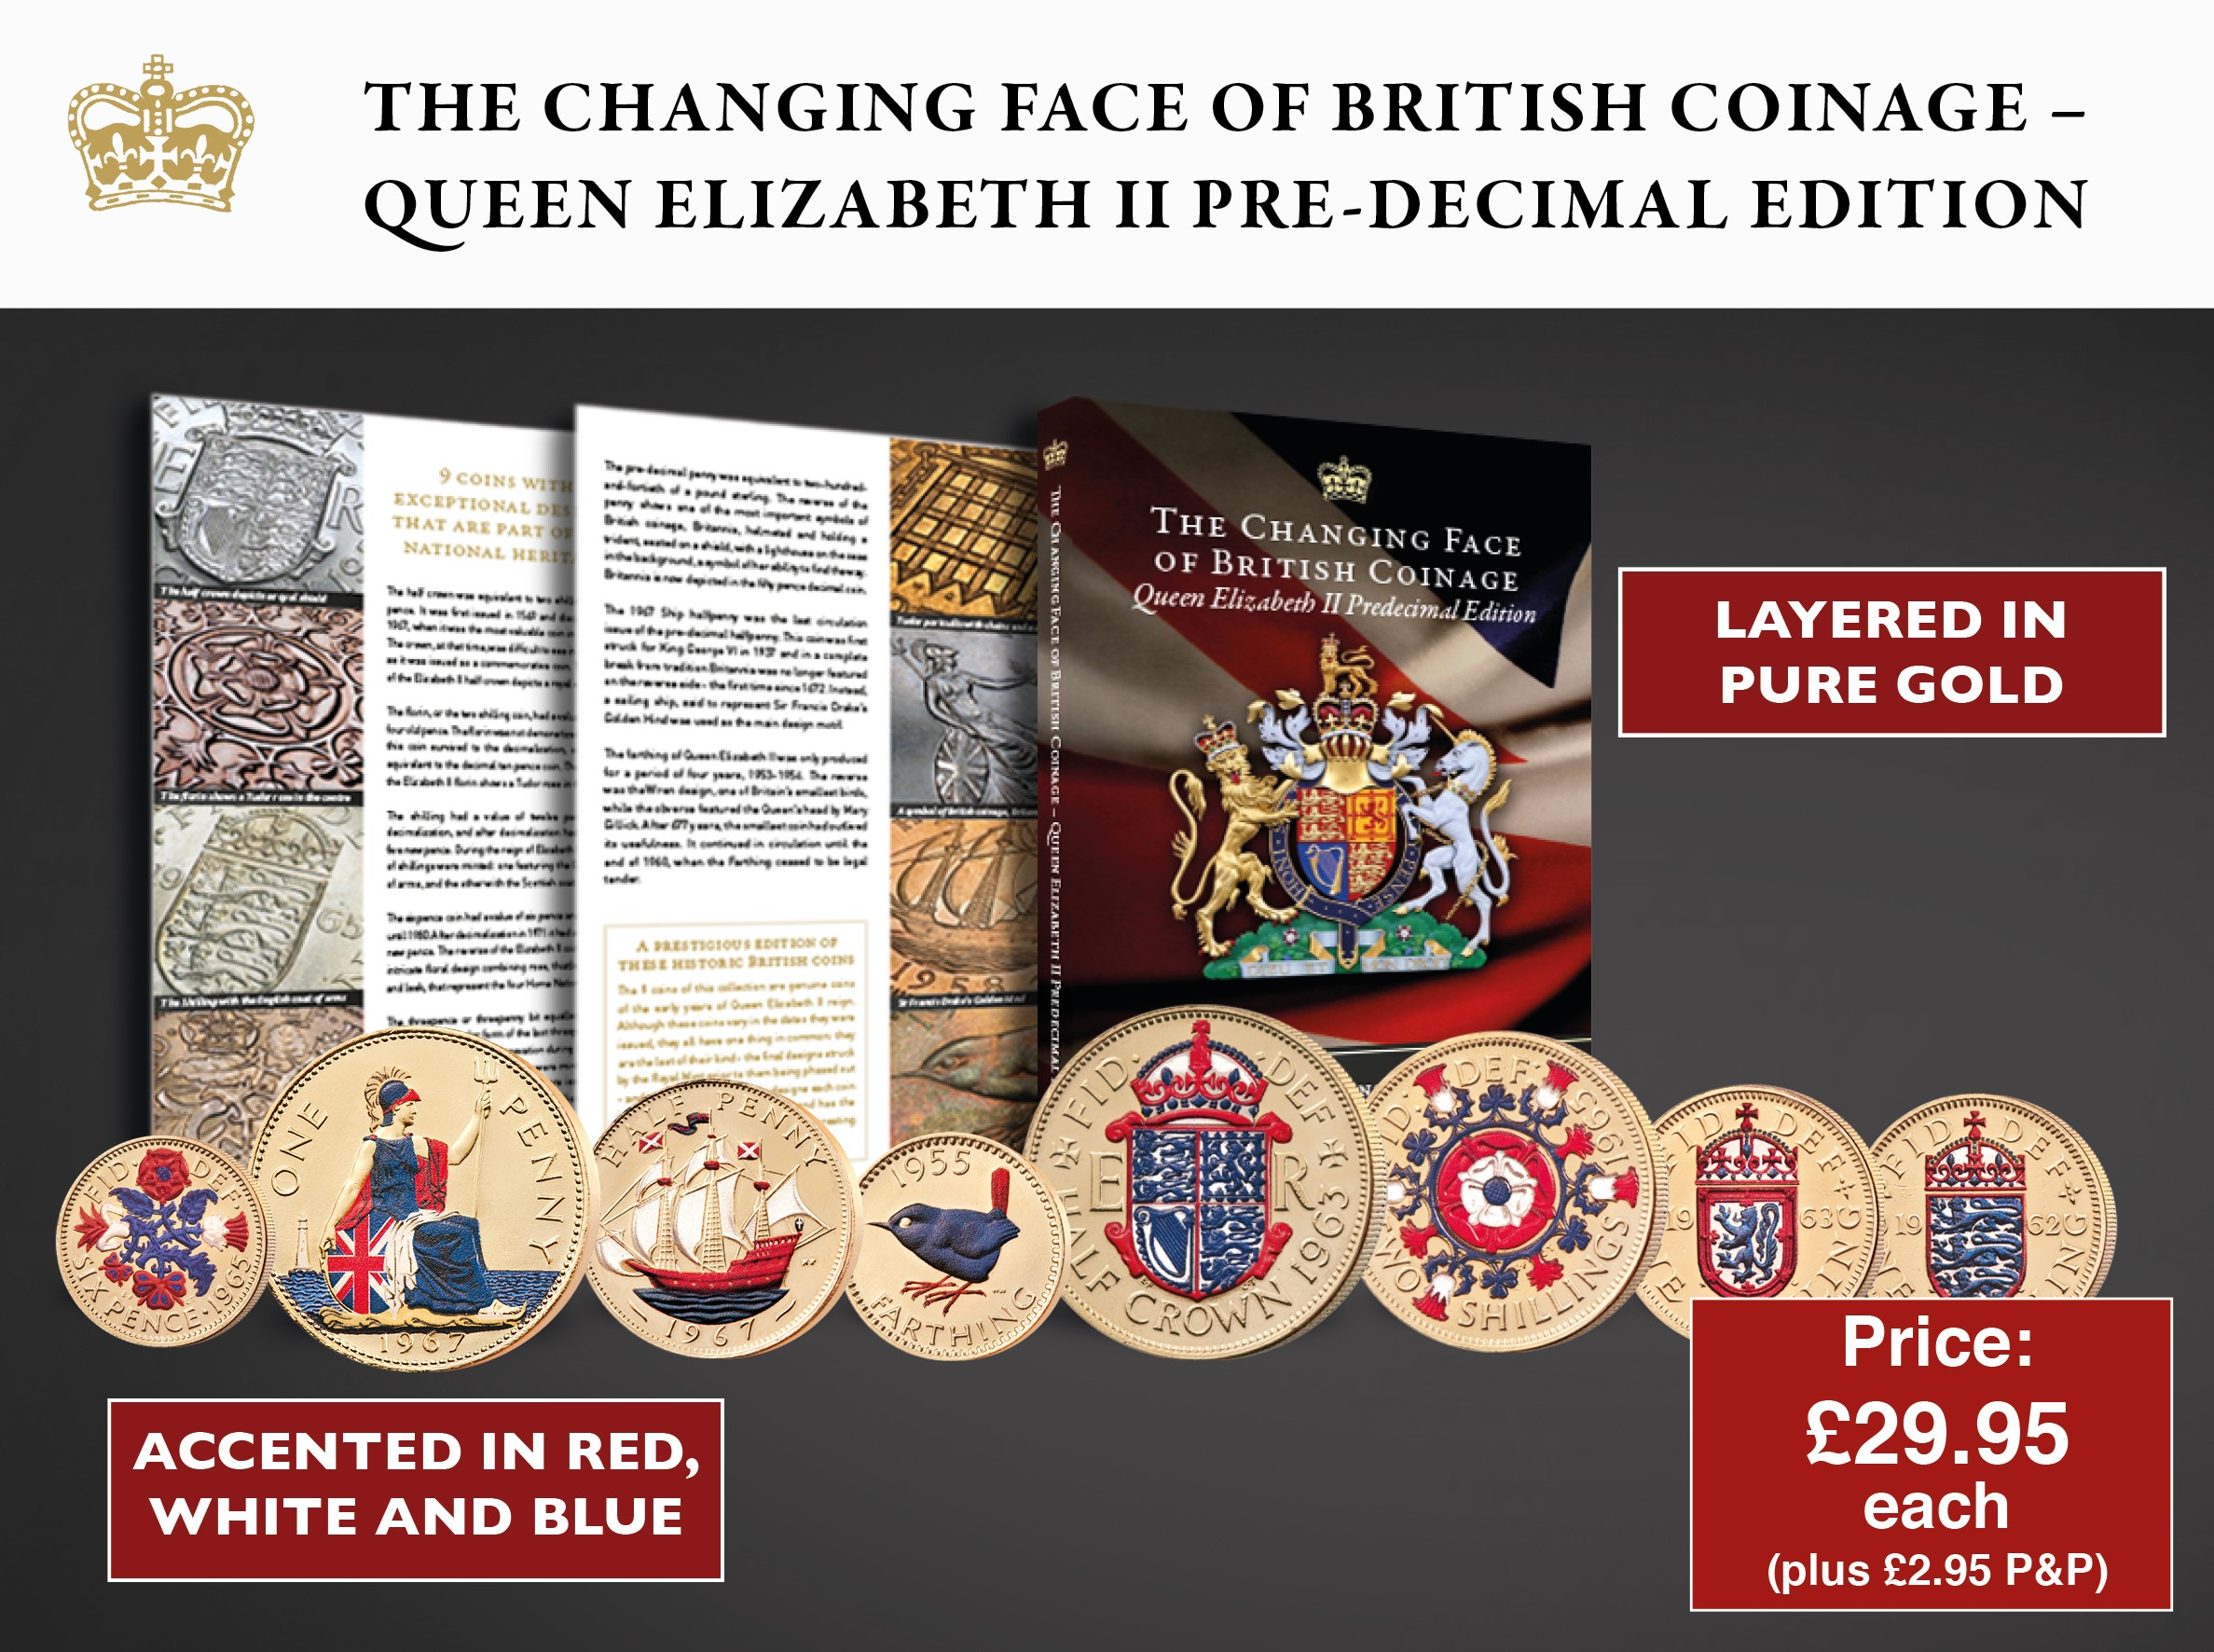 The Changing Faces of British Coinage Set